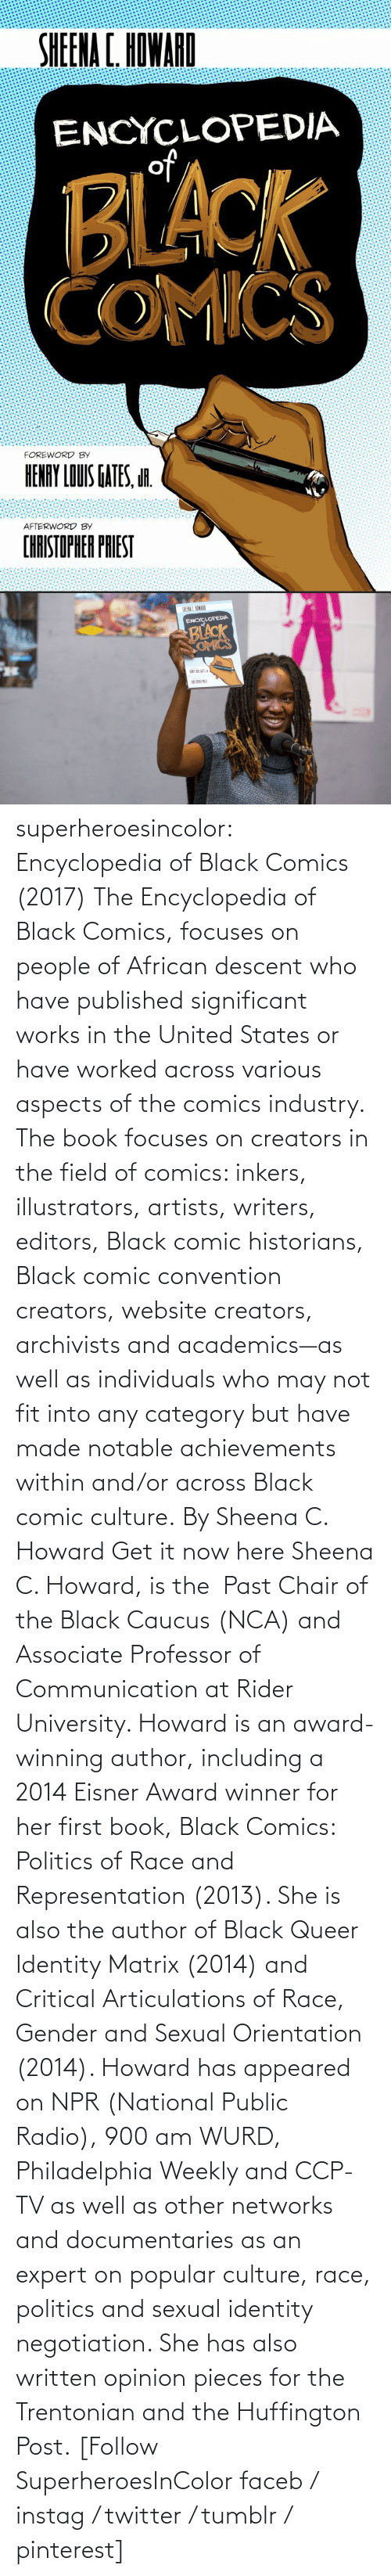 first: superheroesincolor: Encyclopedia of Black Comics (2017) The Encyclopedia of Black Comics, focuses on people of African descent who have published significant works in the United States or have worked across various aspects of the comics industry.  The book focuses on creators in the field of comics: inkers, illustrators, artists, writers, editors, Black comic historians, Black comic convention creators, website creators, archivists and academics—as well as individuals who may not fit into any category but have made notable achievements within and/or across Black comic culture. By Sheena C. Howard Get it now here  Sheena C. Howard, is the  Past Chair of the Black Caucus (NCA) and Associate Professor of Communication at Rider University. Howard is an award-winning author, including a 2014 Eisner Award winner for her first book, Black Comics: Politics of Race and Representation (2013). She is also the author of Black Queer Identity Matrix (2014) and Critical Articulations of Race, Gender and Sexual Orientation (2014). Howard has appeared on NPR (National Public Radio), 900 am WURD, Philadelphia Weekly and CCP-TV as well as other networks and documentaries as an expert on popular culture, race, politics and sexual identity negotiation. She has also written opinion pieces for the Trentonian and the Huffington Post.   [Follow SuperheroesInColor faceb / instag / twitter / tumblr / pinterest]